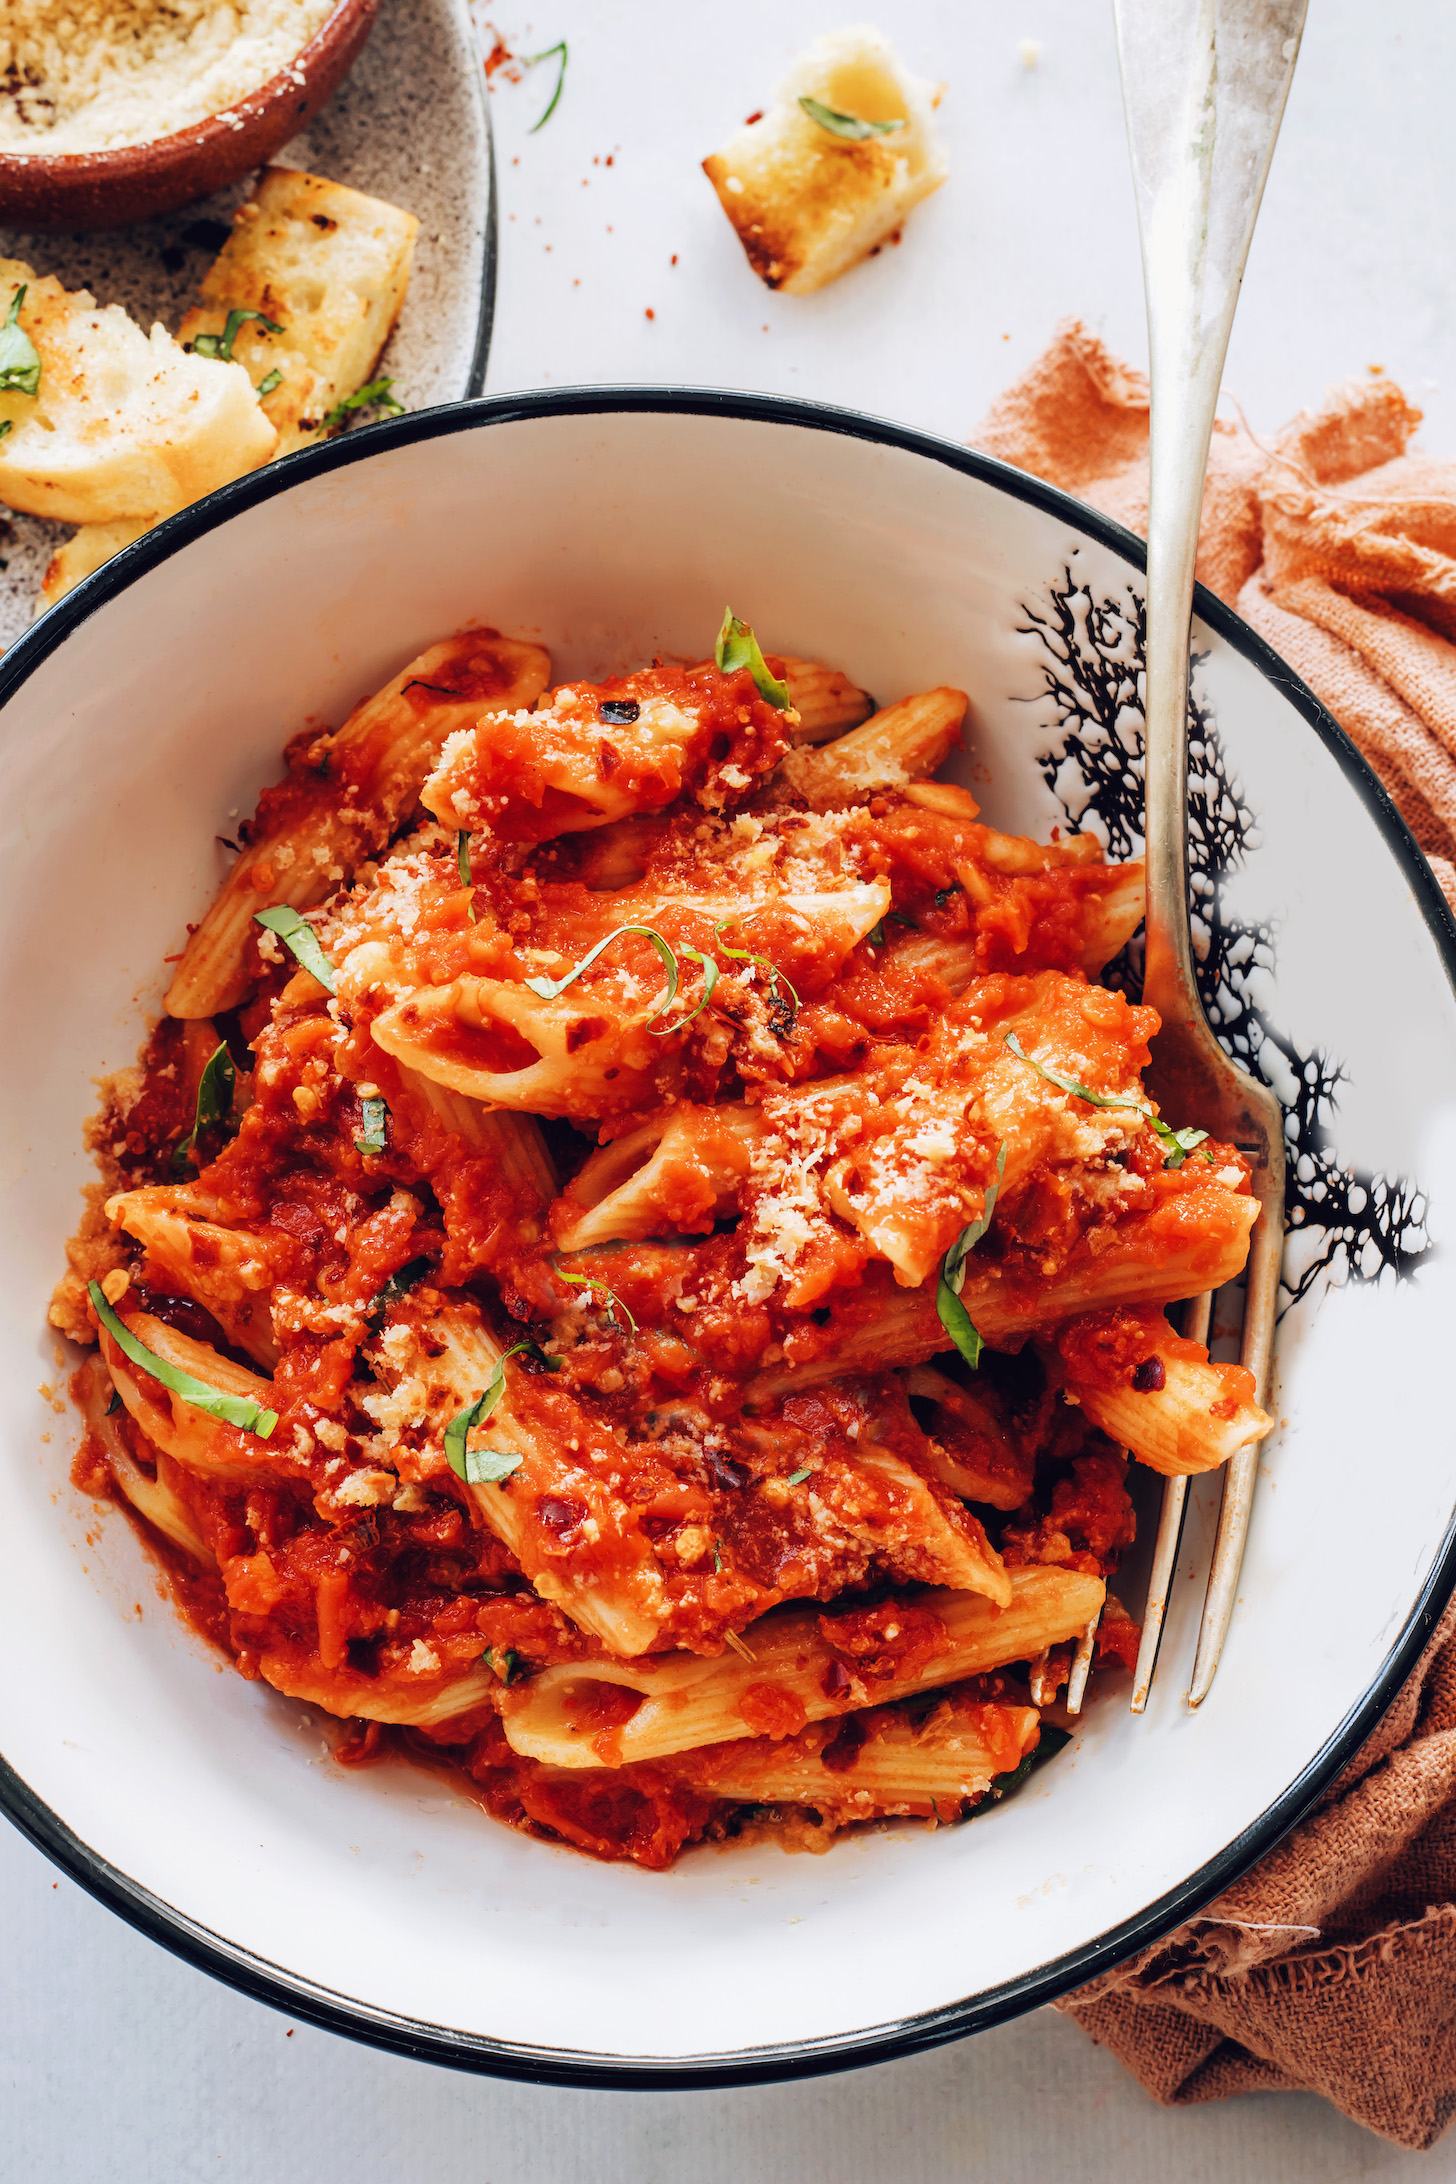 Bowl of penne arrabbiata topped with vegan parmesan cheese and fresh basil